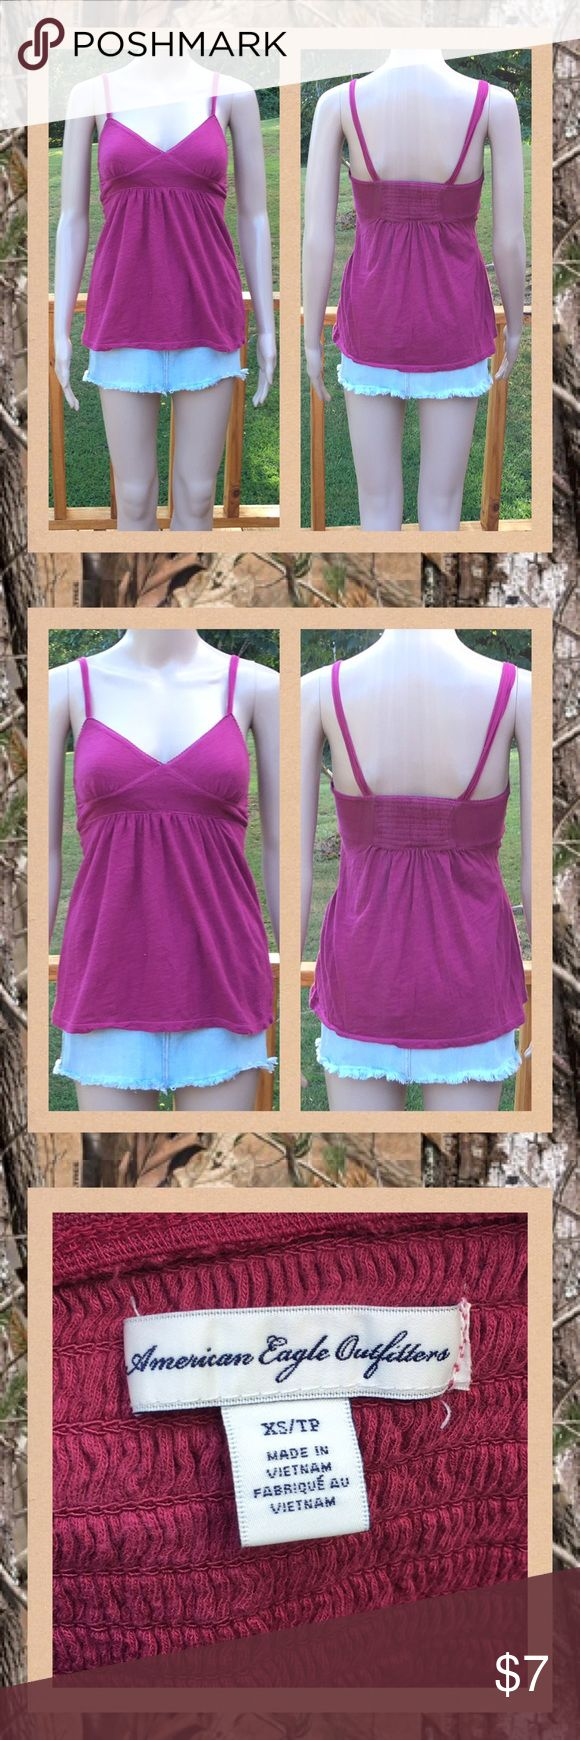 American Eagle Spaghetti Strap Tank Top American Eagle burgundyish spaghetti strap tank top, size x-small.  Thin and comfy with stretch to it. Elastic section in the back, babydoll style. Smoke free home. American Eagle Outfitters Tops Tank Tops